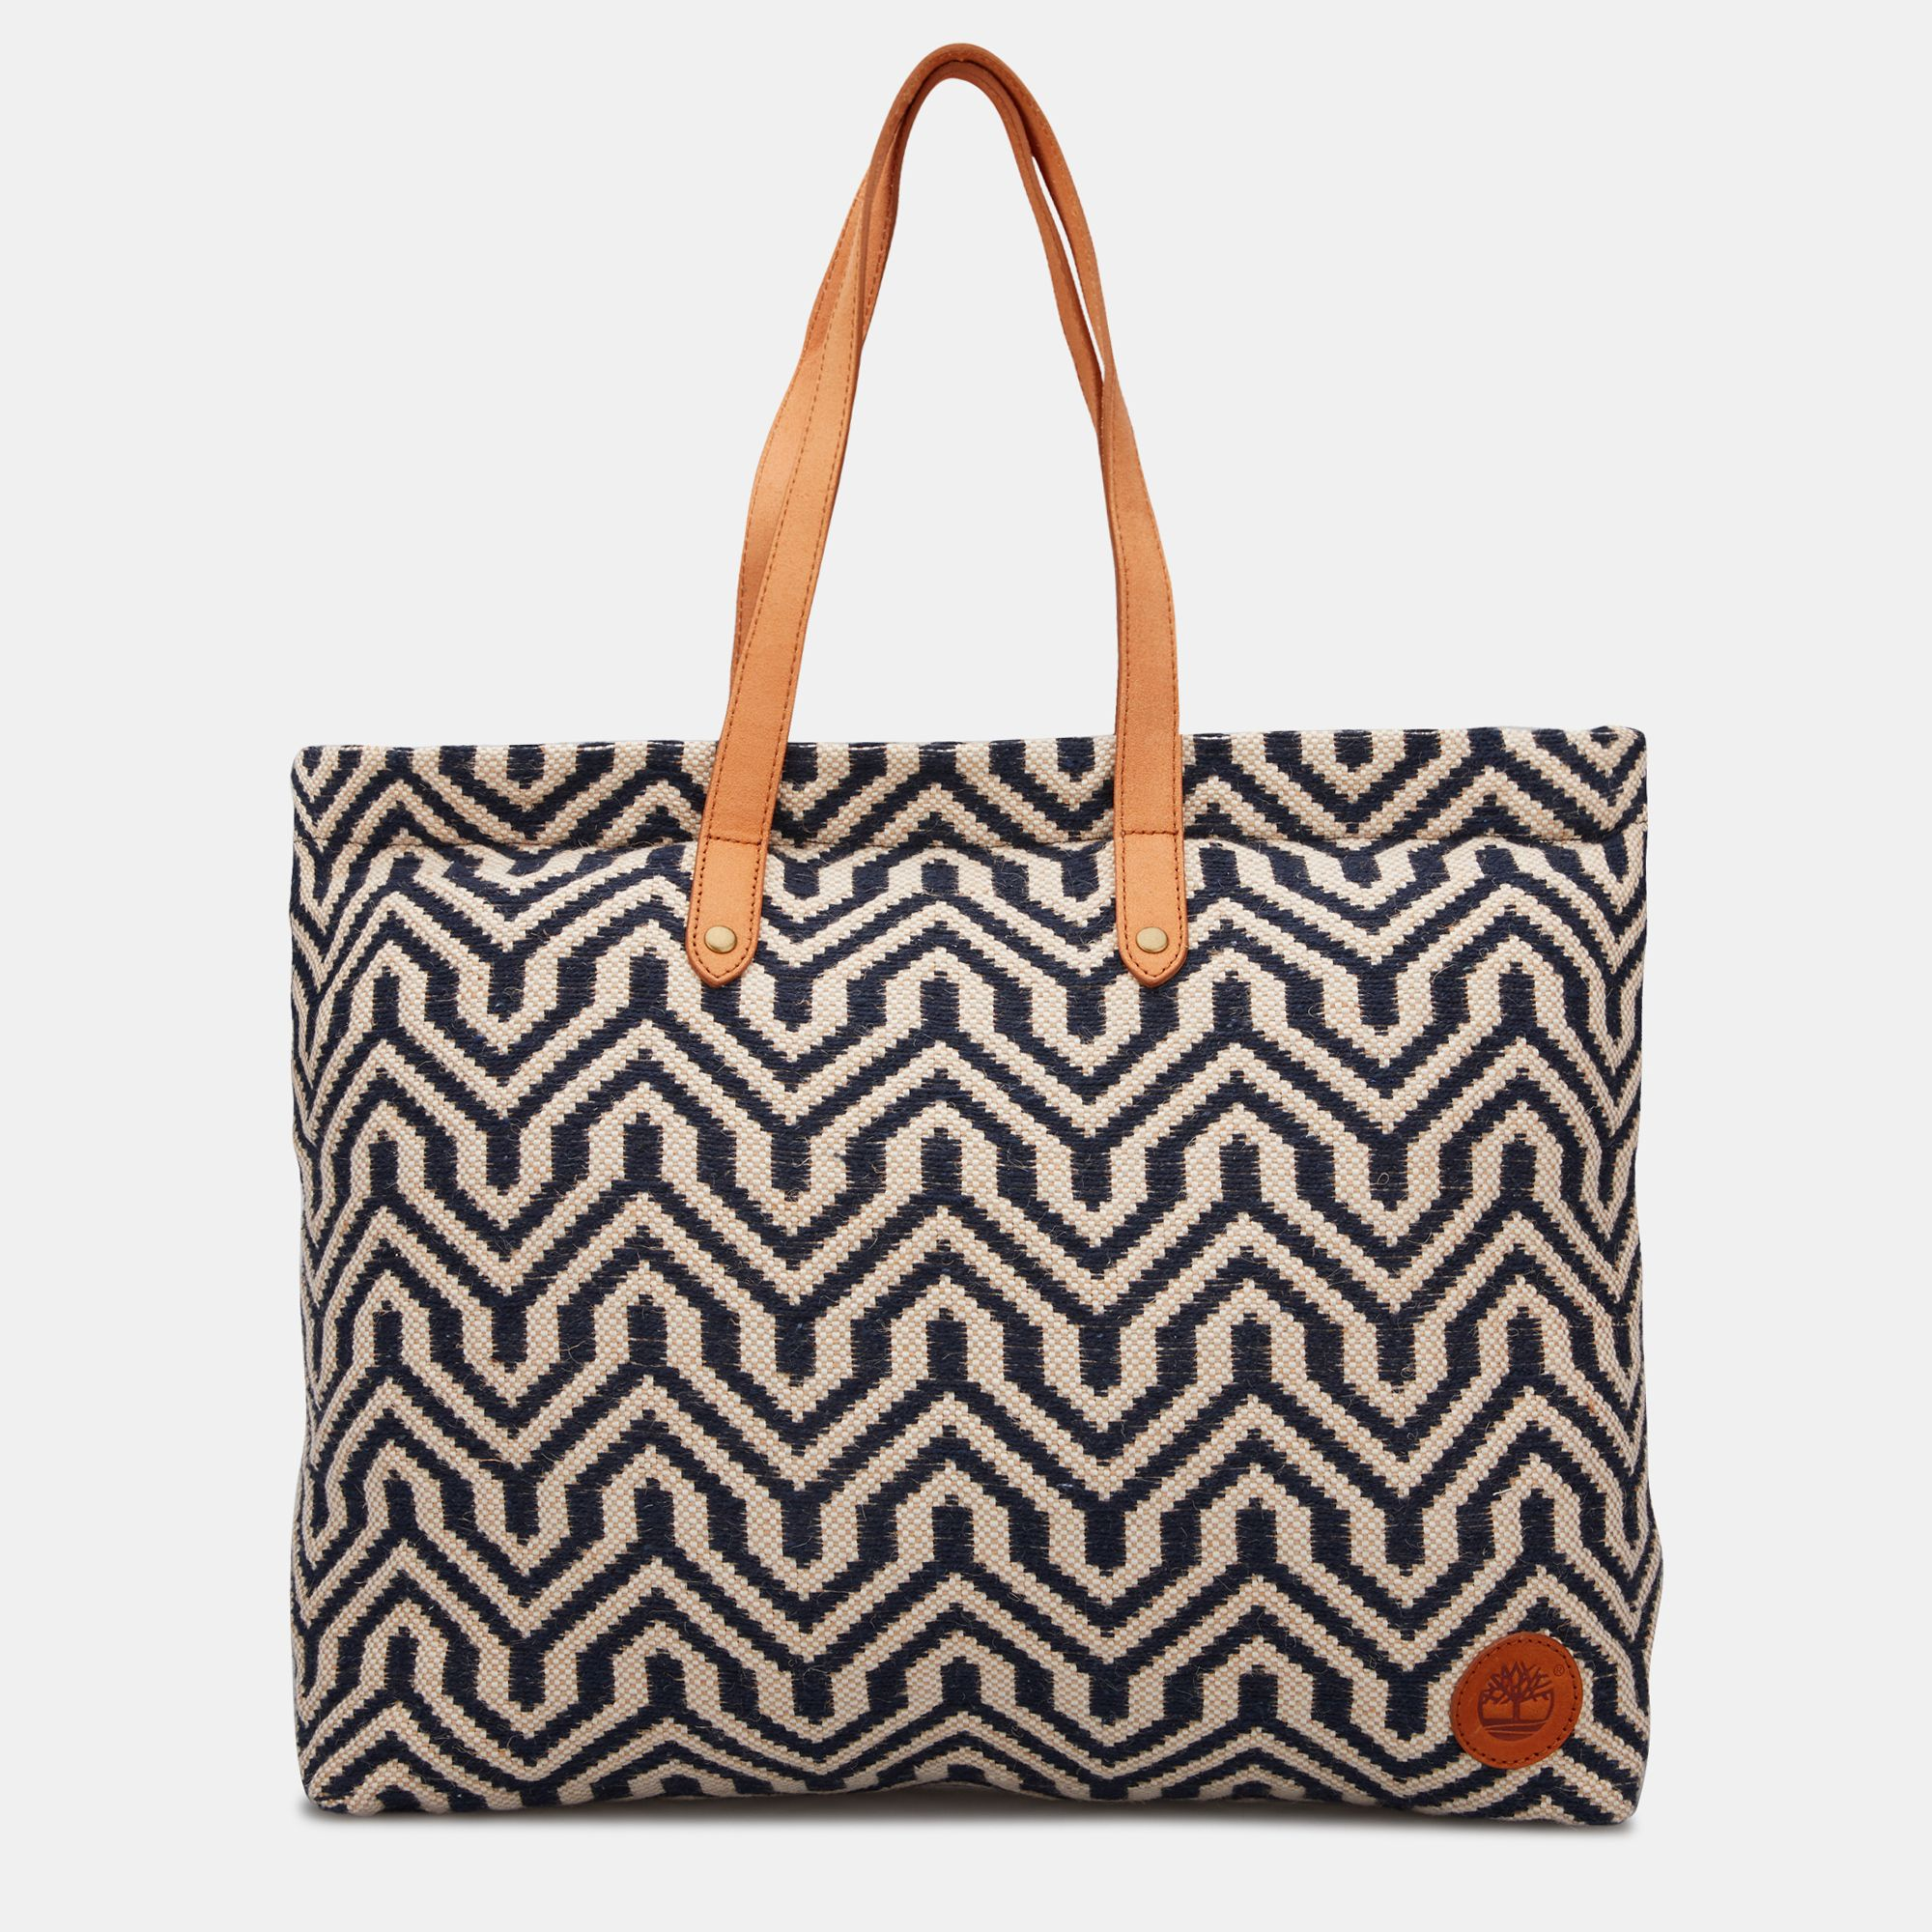 341704af33 Timberland Women's Shopping Bag | Tote Bags | Bags and Luggage ...